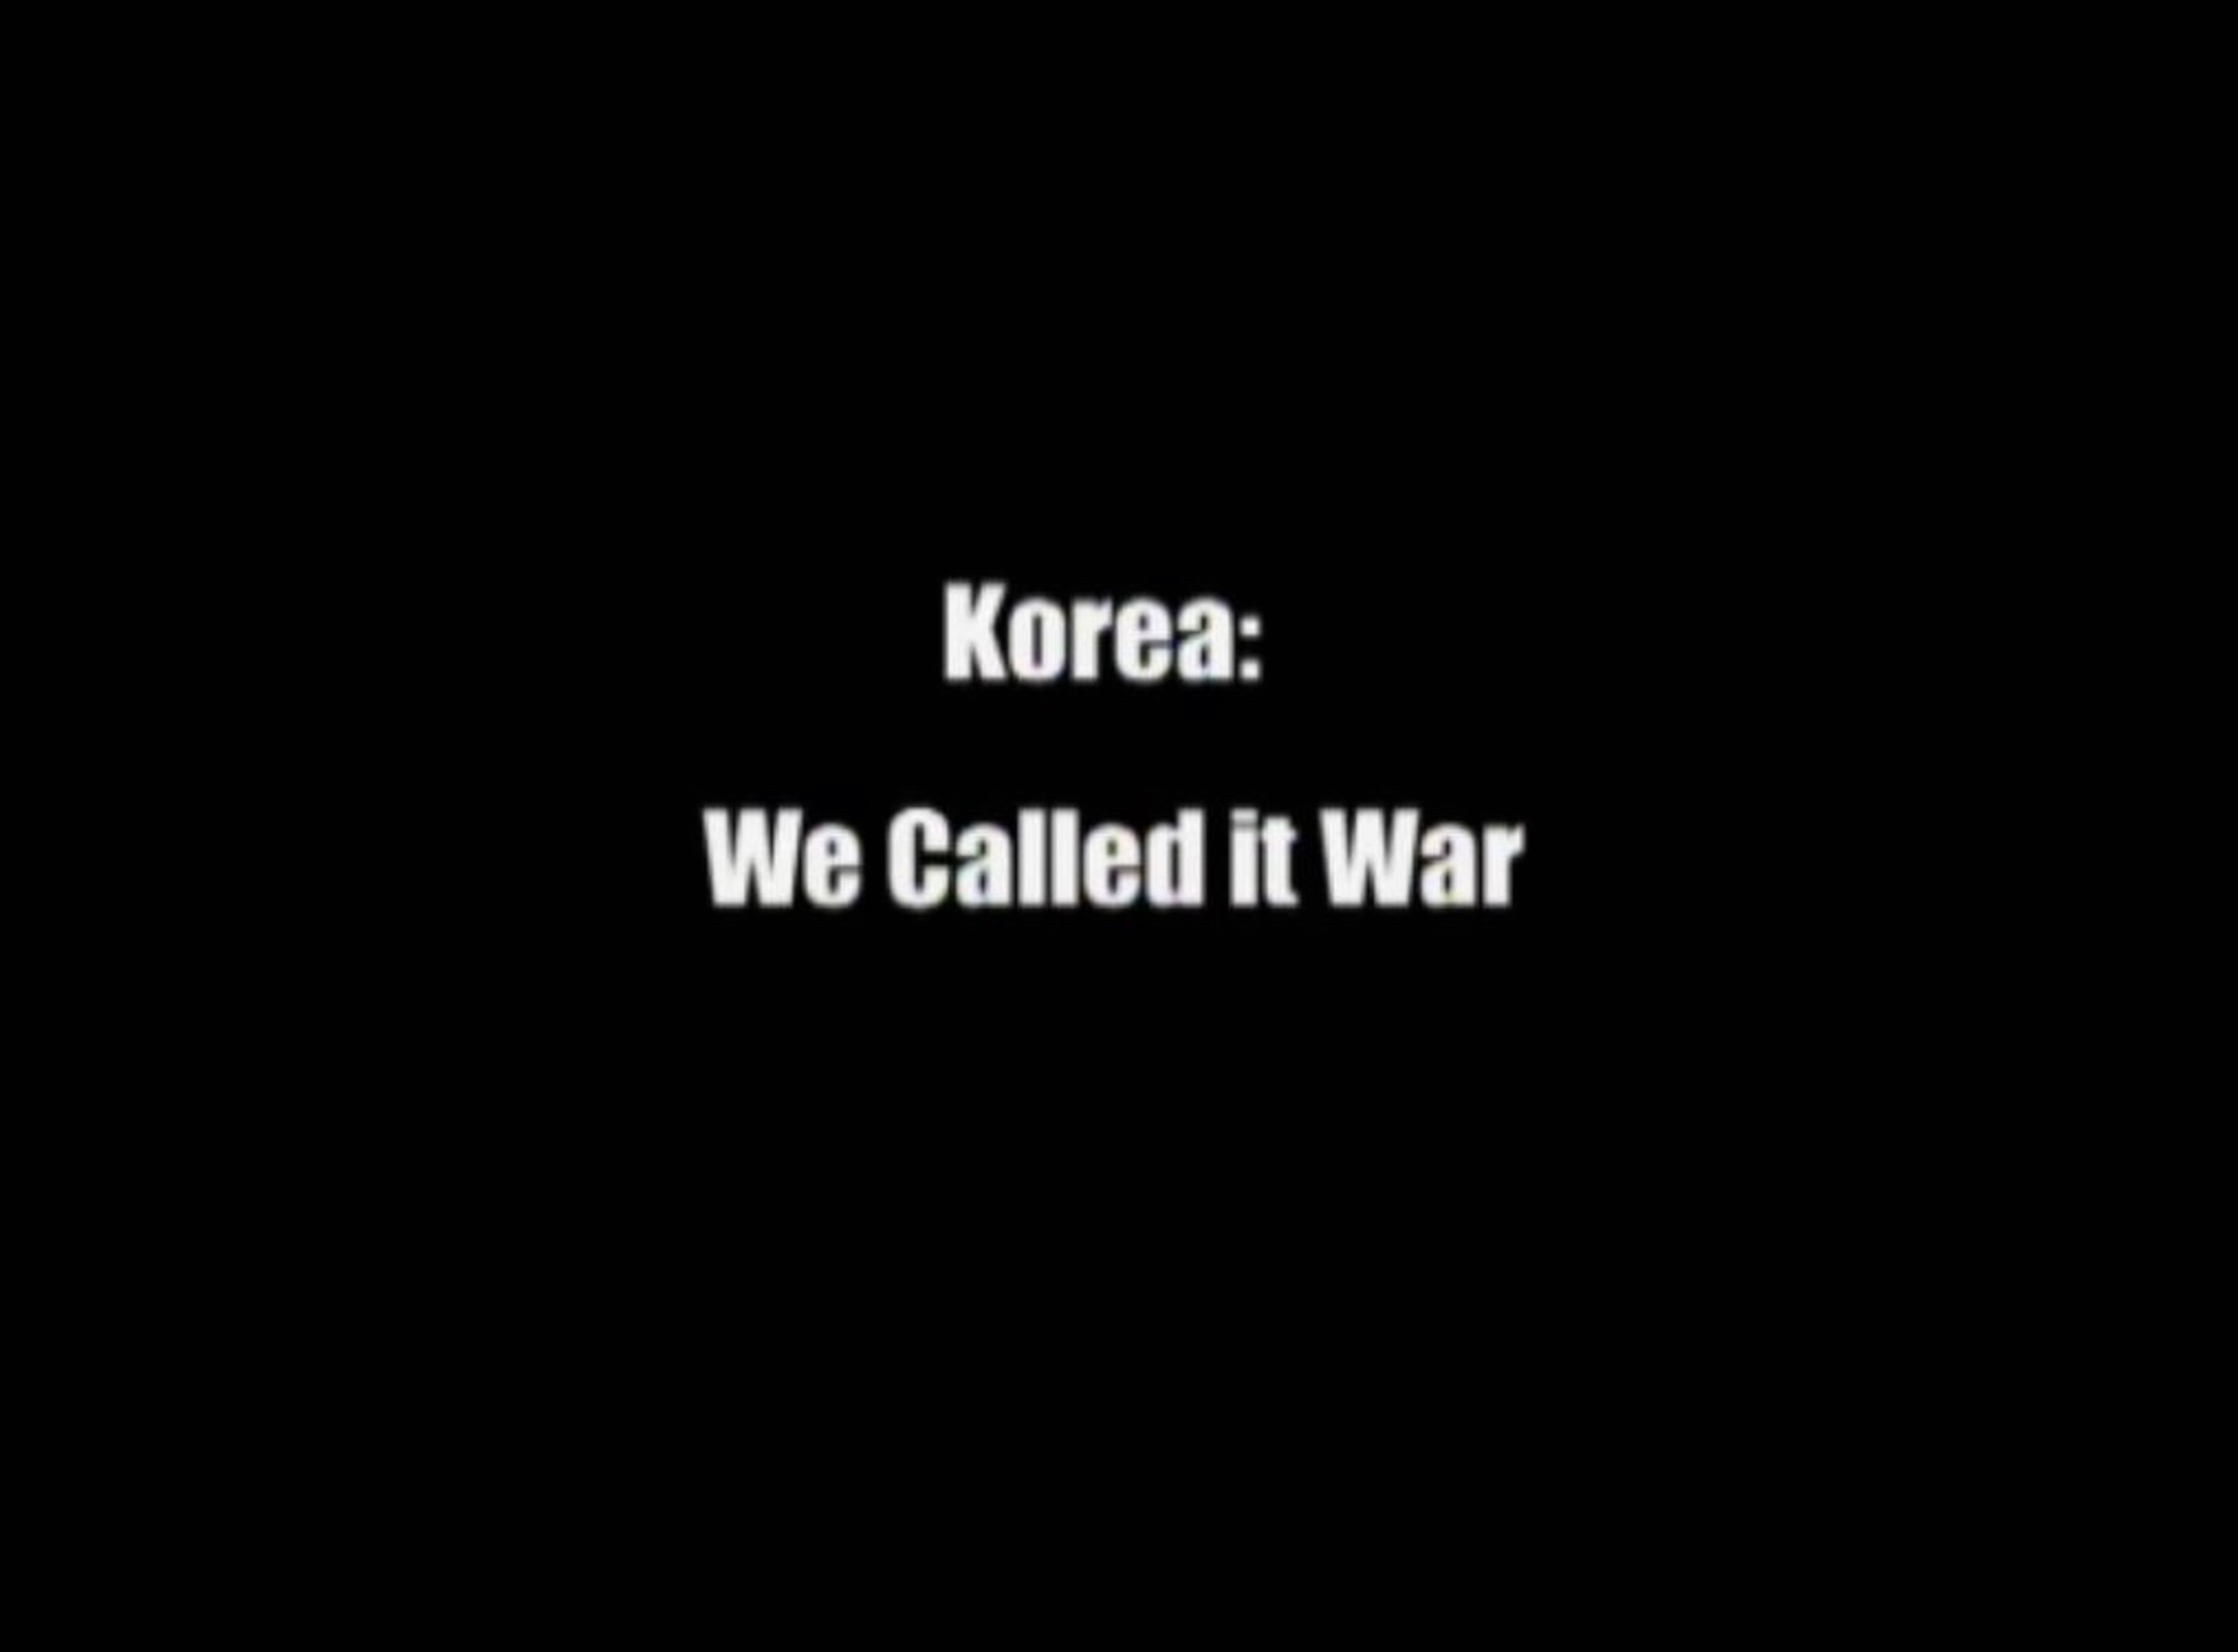 watch Korea: We Called It War on soap2day